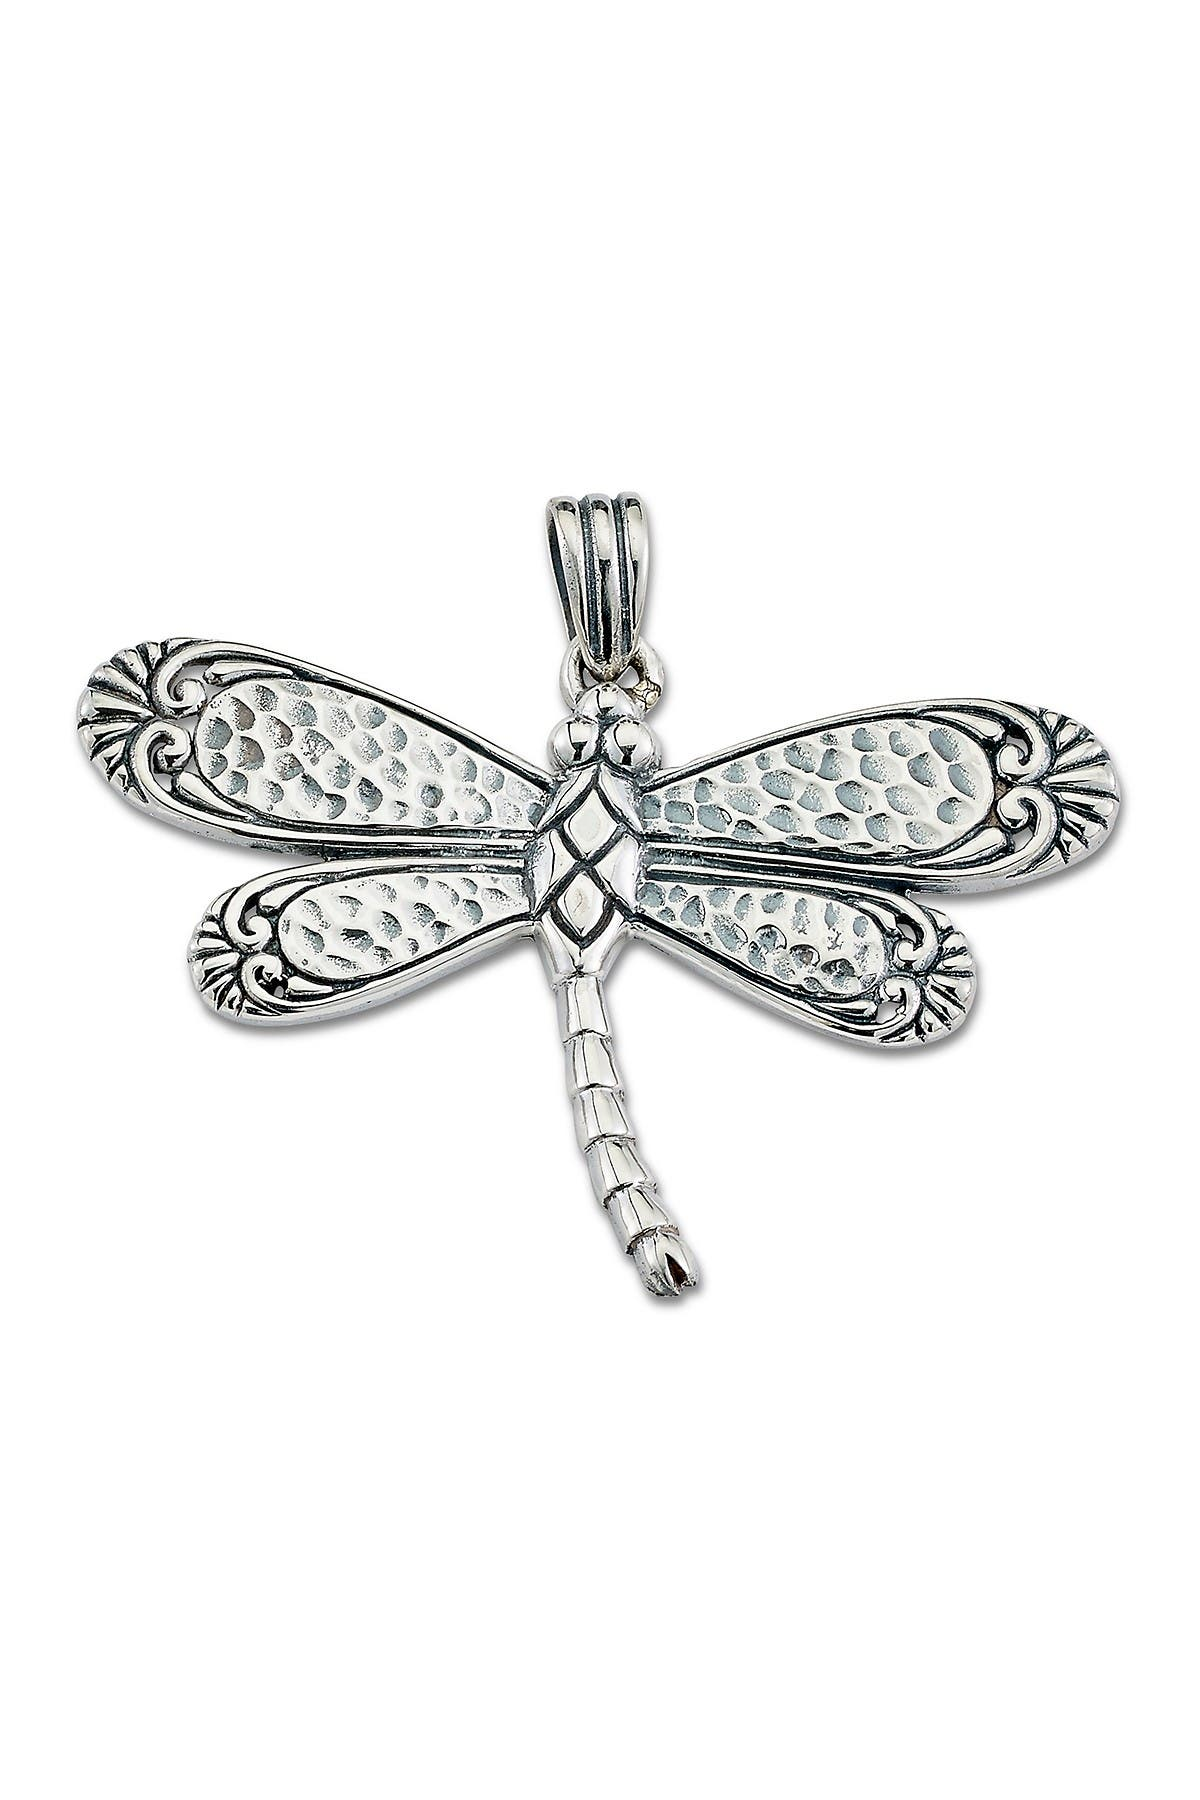 Hammered Necklace Hammered Silver Necklace Dragonfly Necklace Hammered Gift Dragonfly Pendant CLEARANCE Dragonfly Jewelry SALE